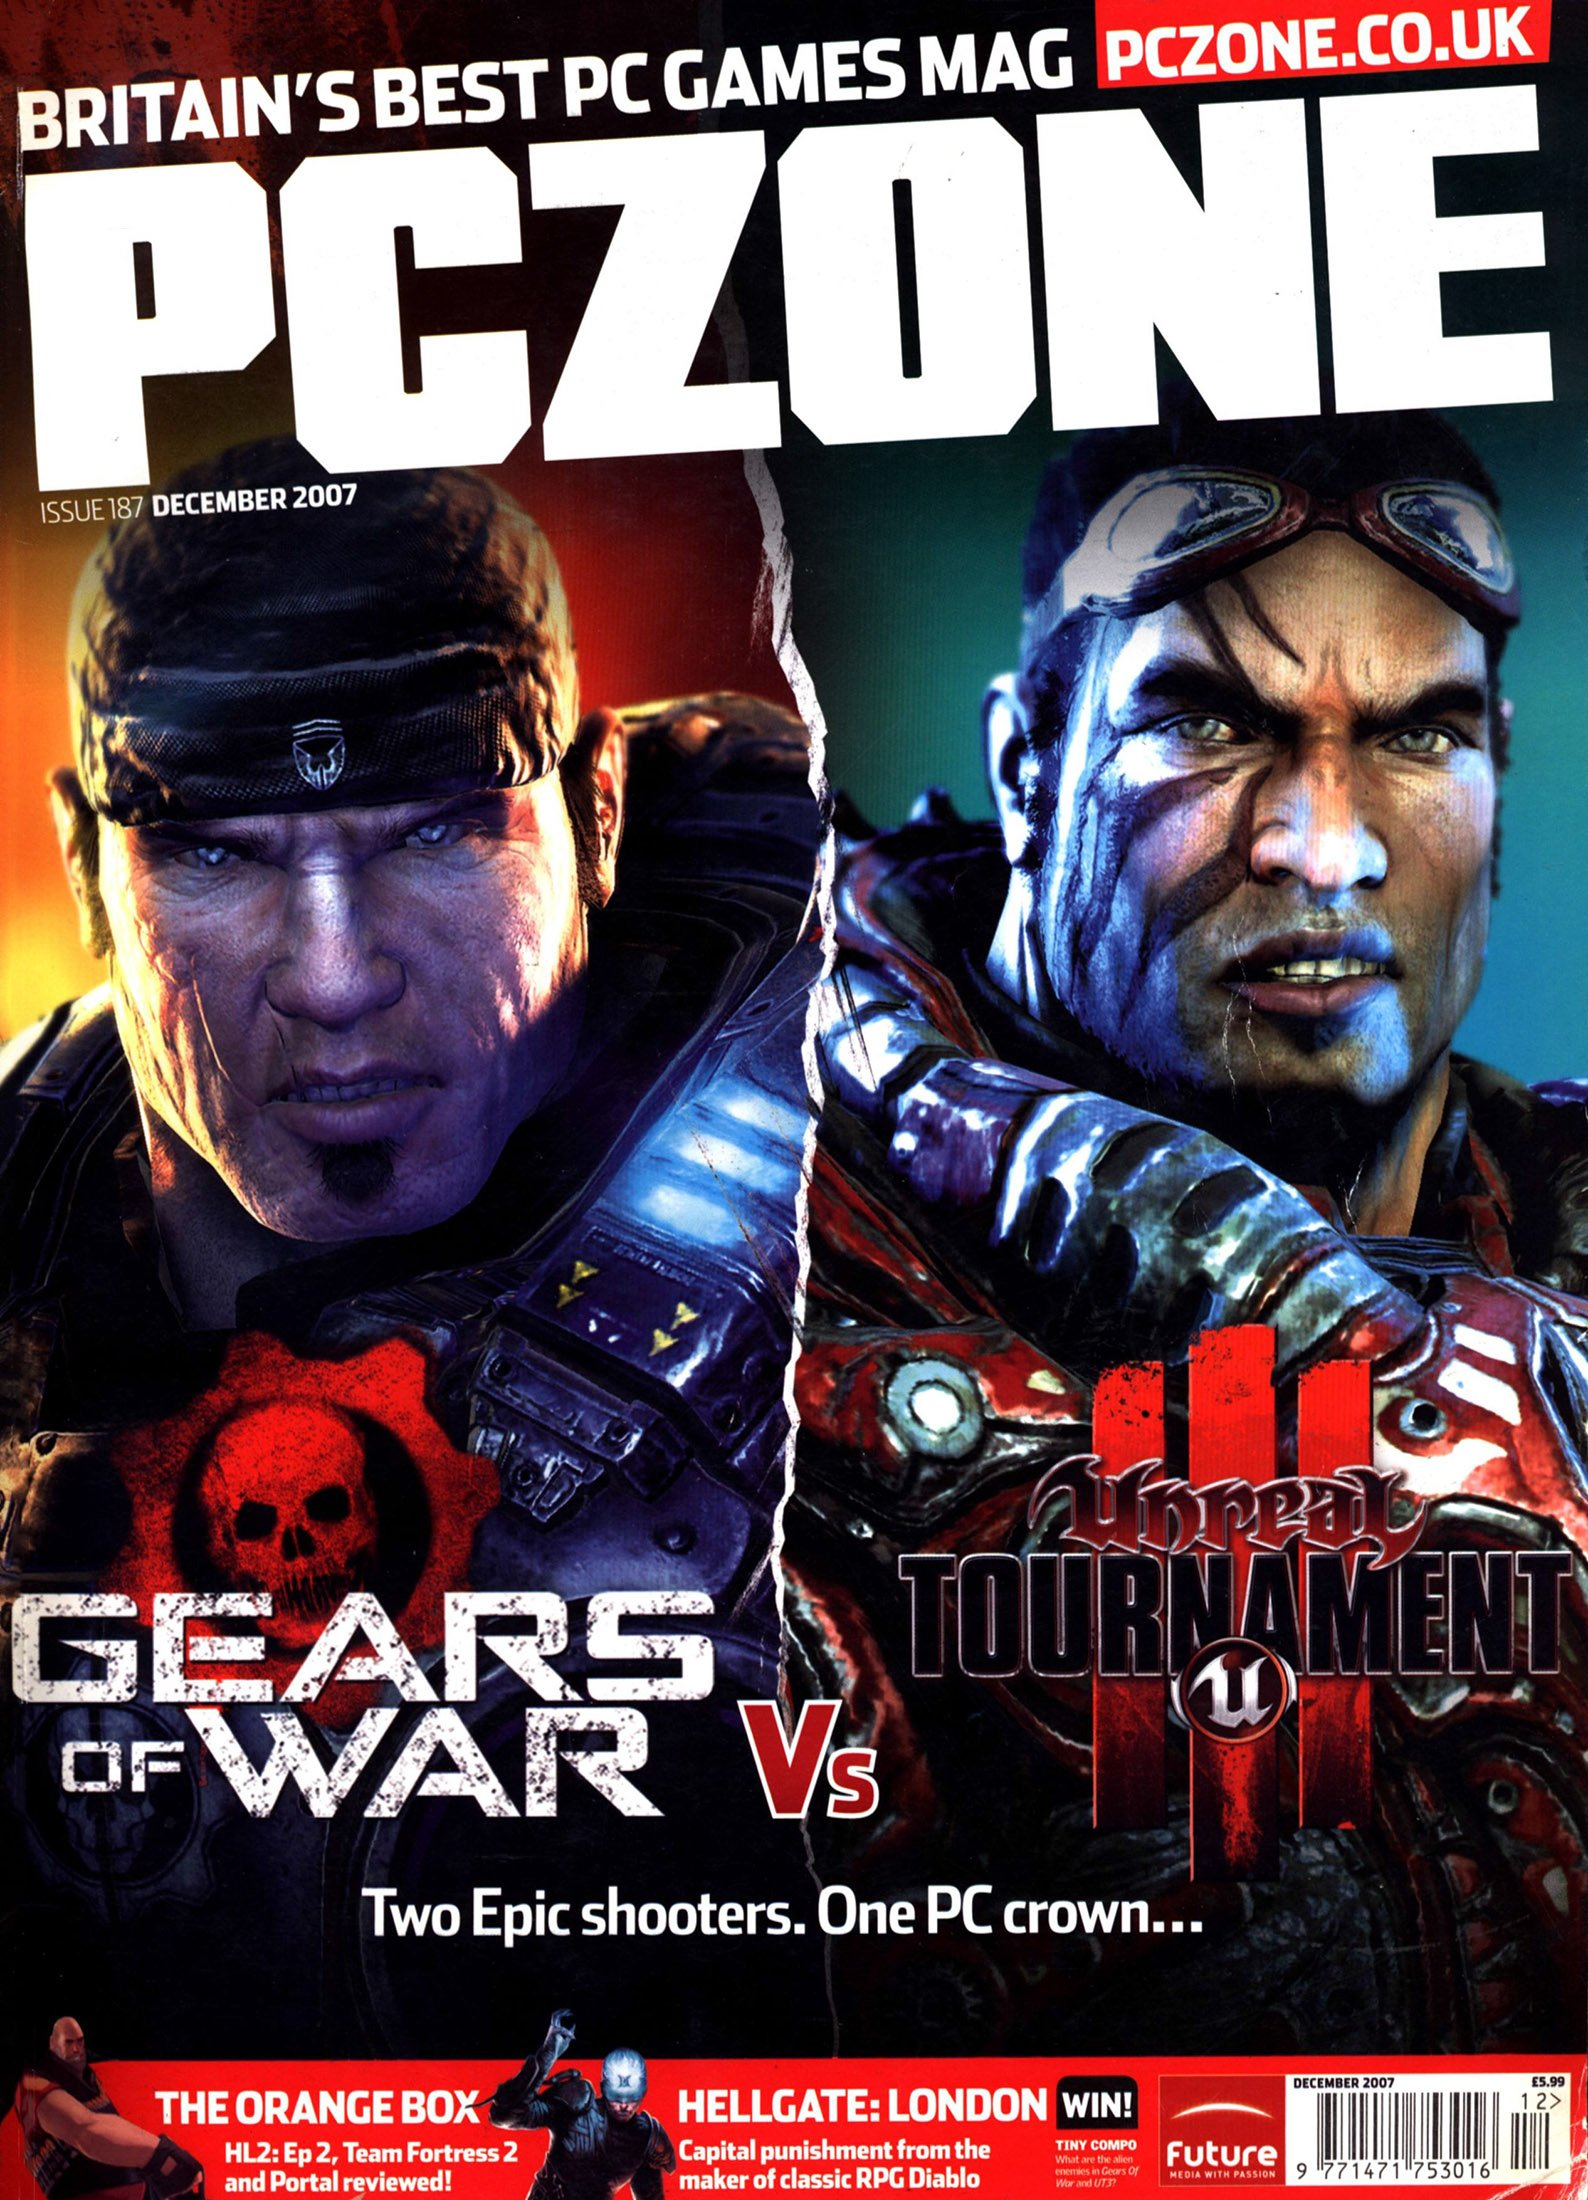 PC Zone Issue 187 (December 2007)